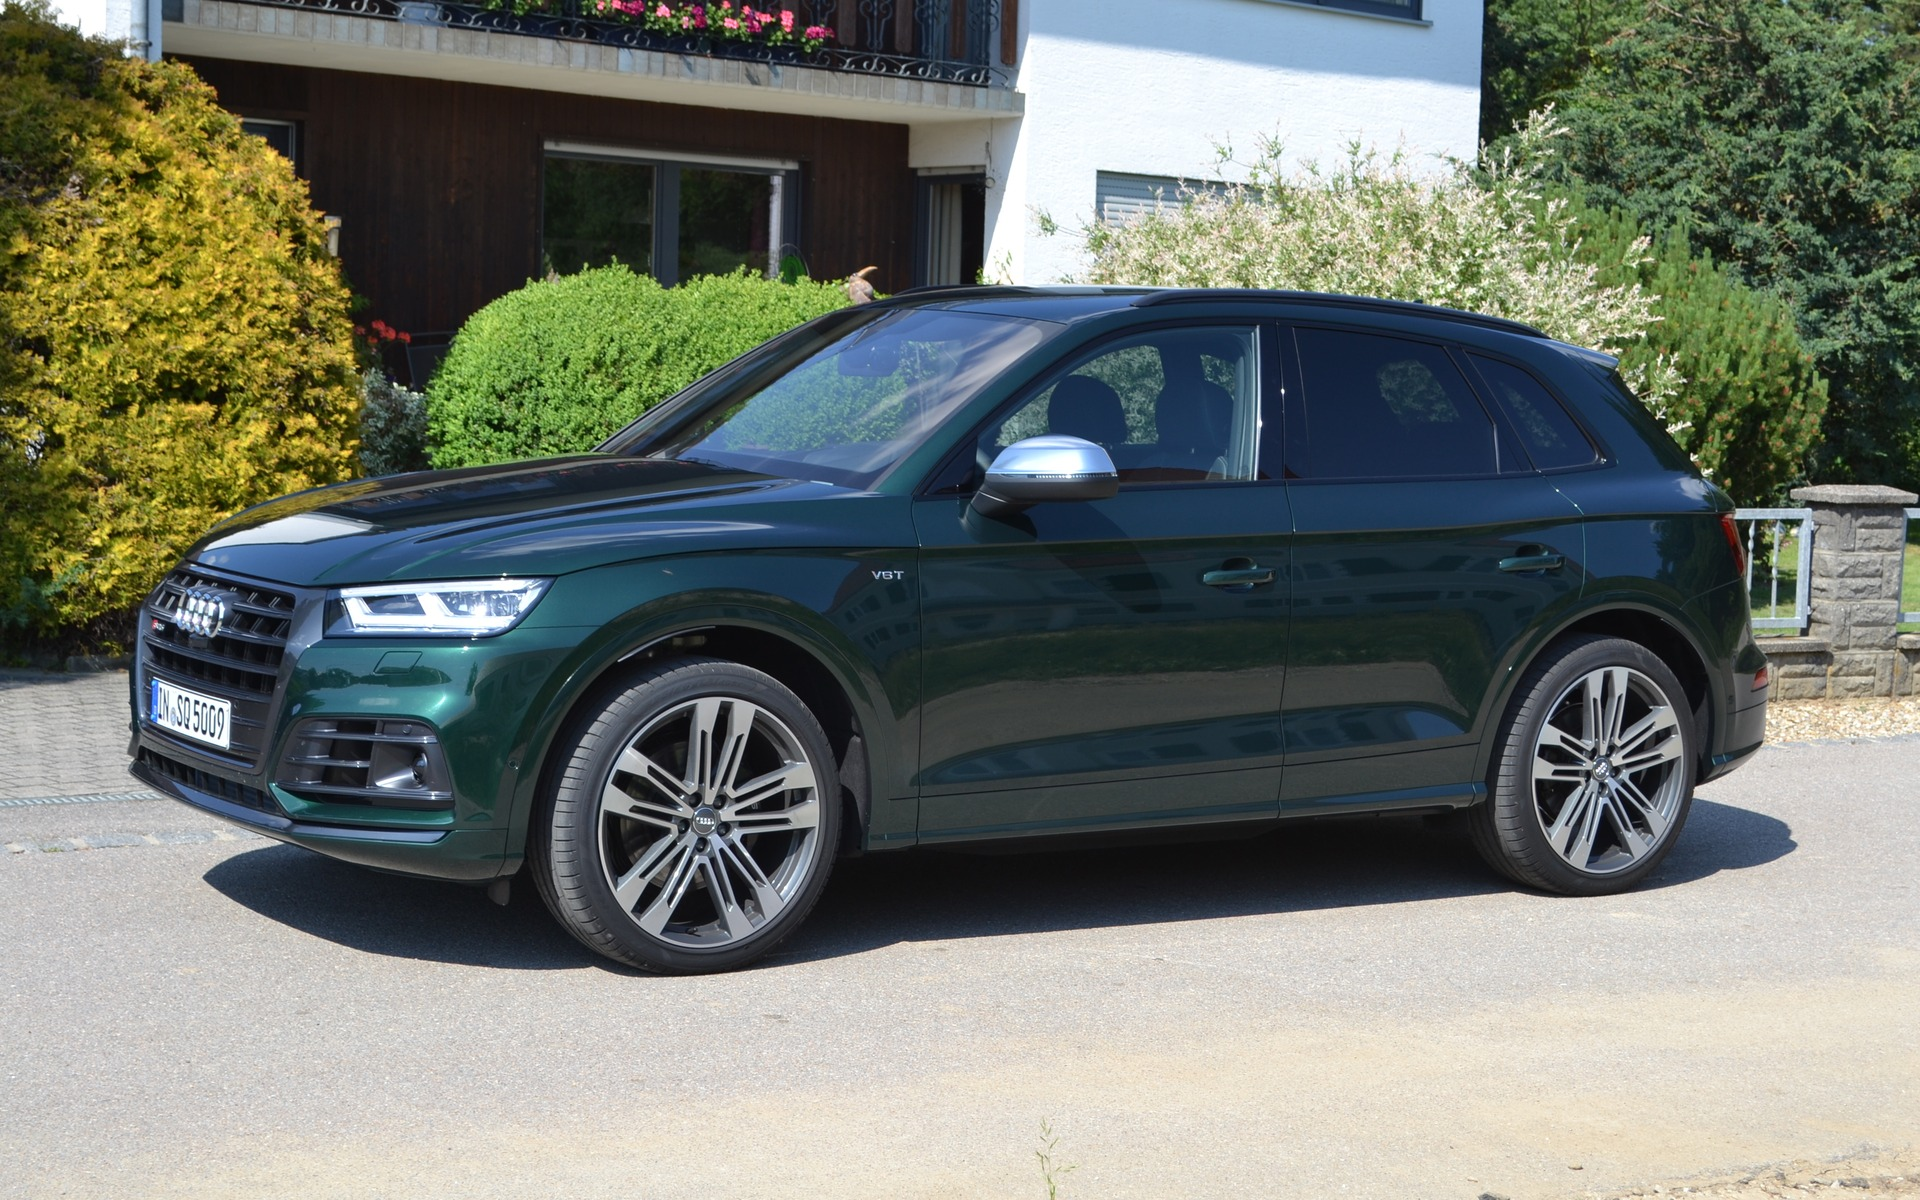 Audi SQ Thrilling Within Reason The Car Guide - 2018 audi sq5